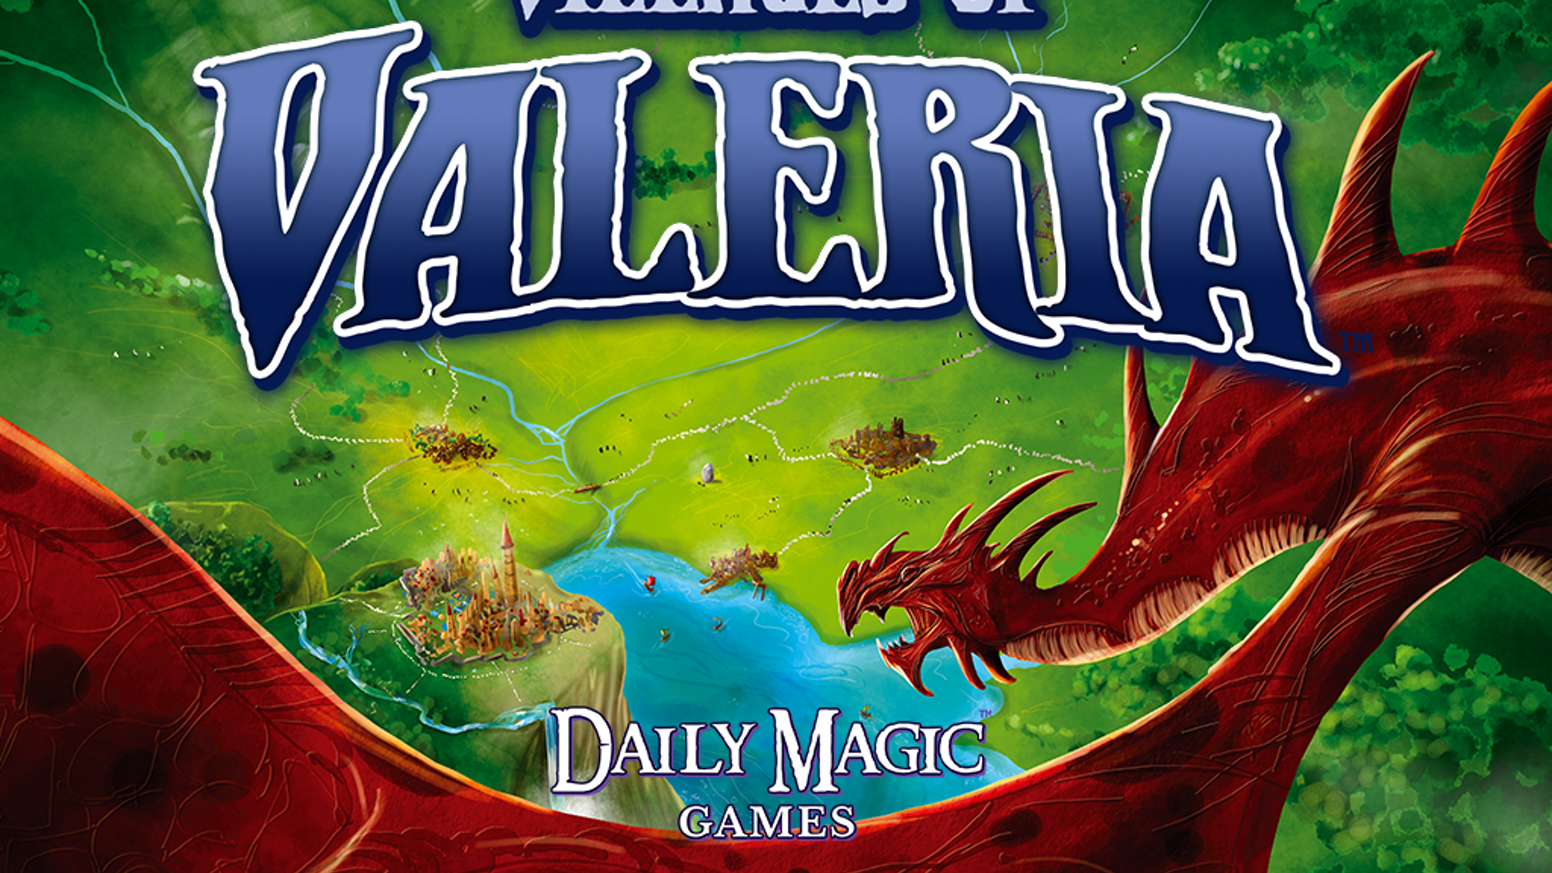 Villages Of Valeria By Daily Magic Games —Kickstarter